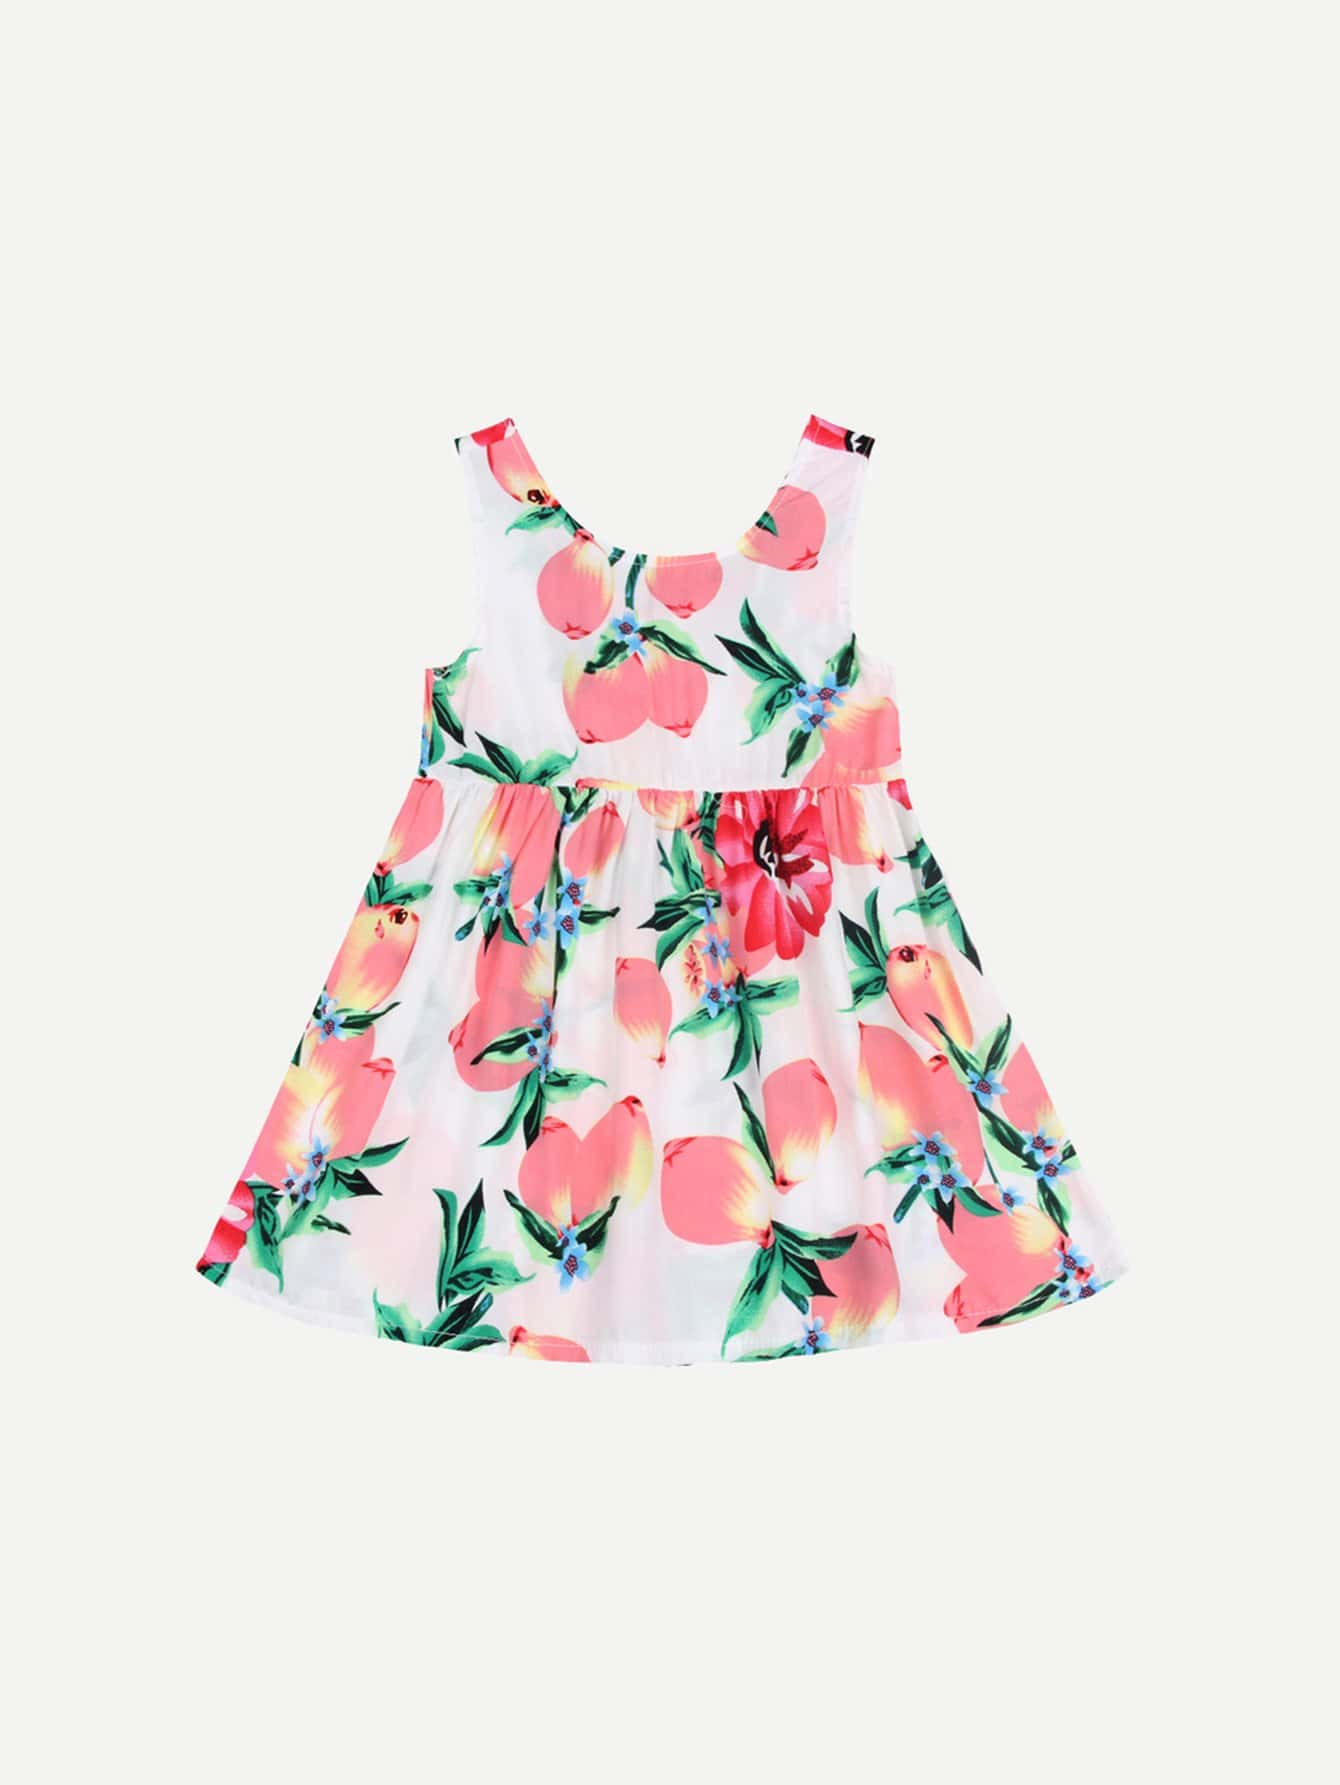 Kids Peach Print Vest Dress 24 12 200mm od id length brass seamless pipe tube of astm c28000 cuzn40 cz109 c2800 h59 hollow bar iso certified free shipping